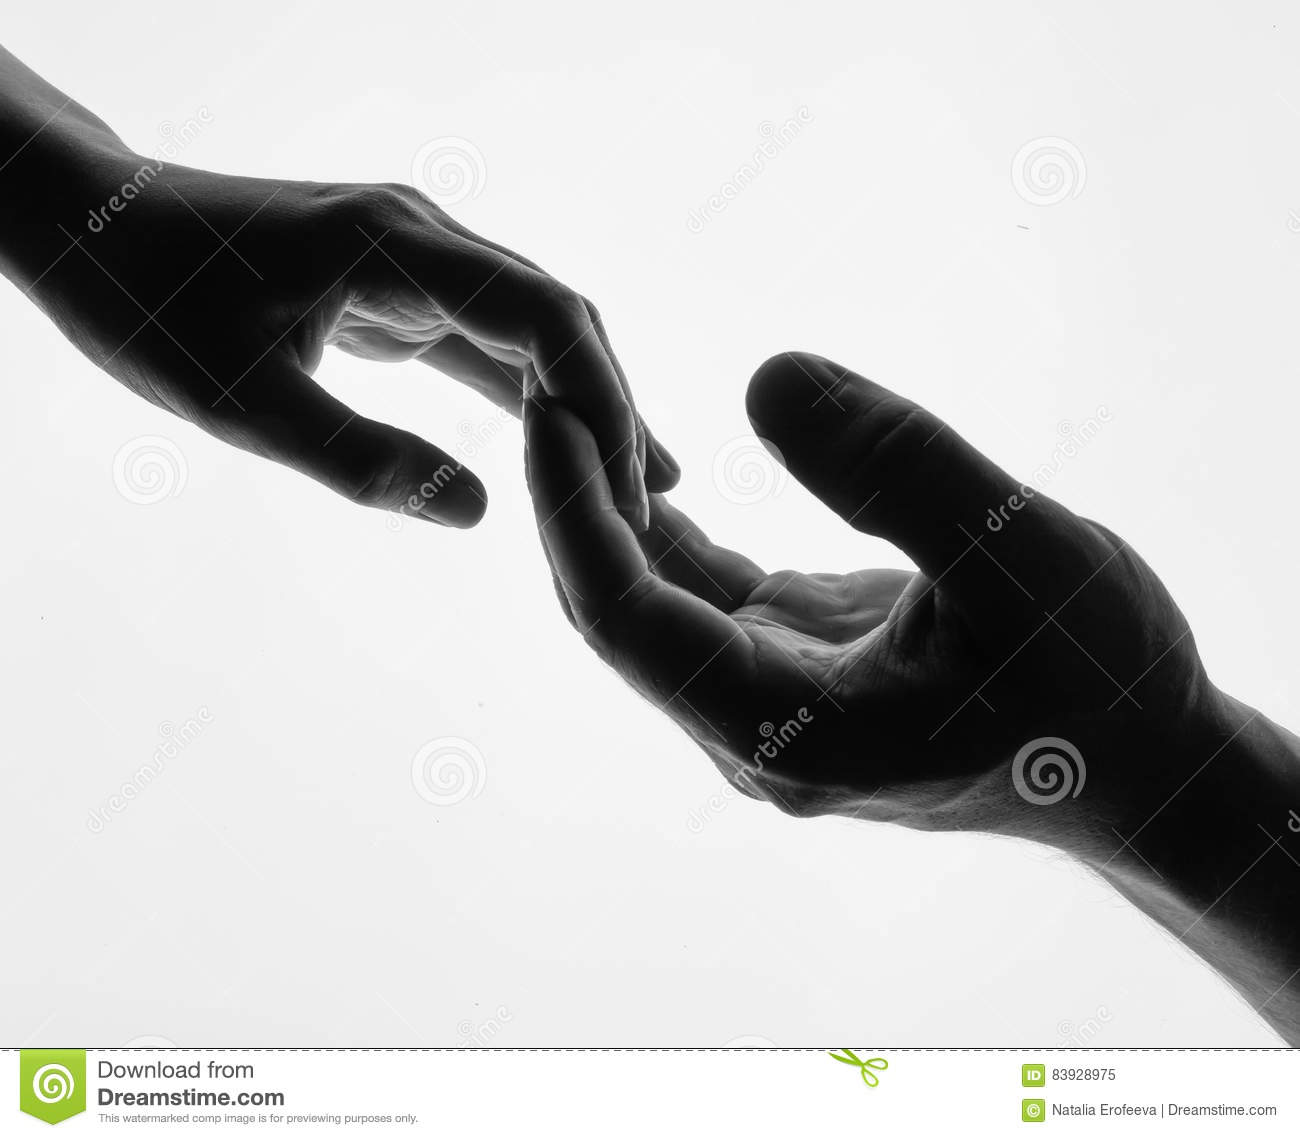 Man woman hold hands silhouette white background couple holding hands closeup black and white photo